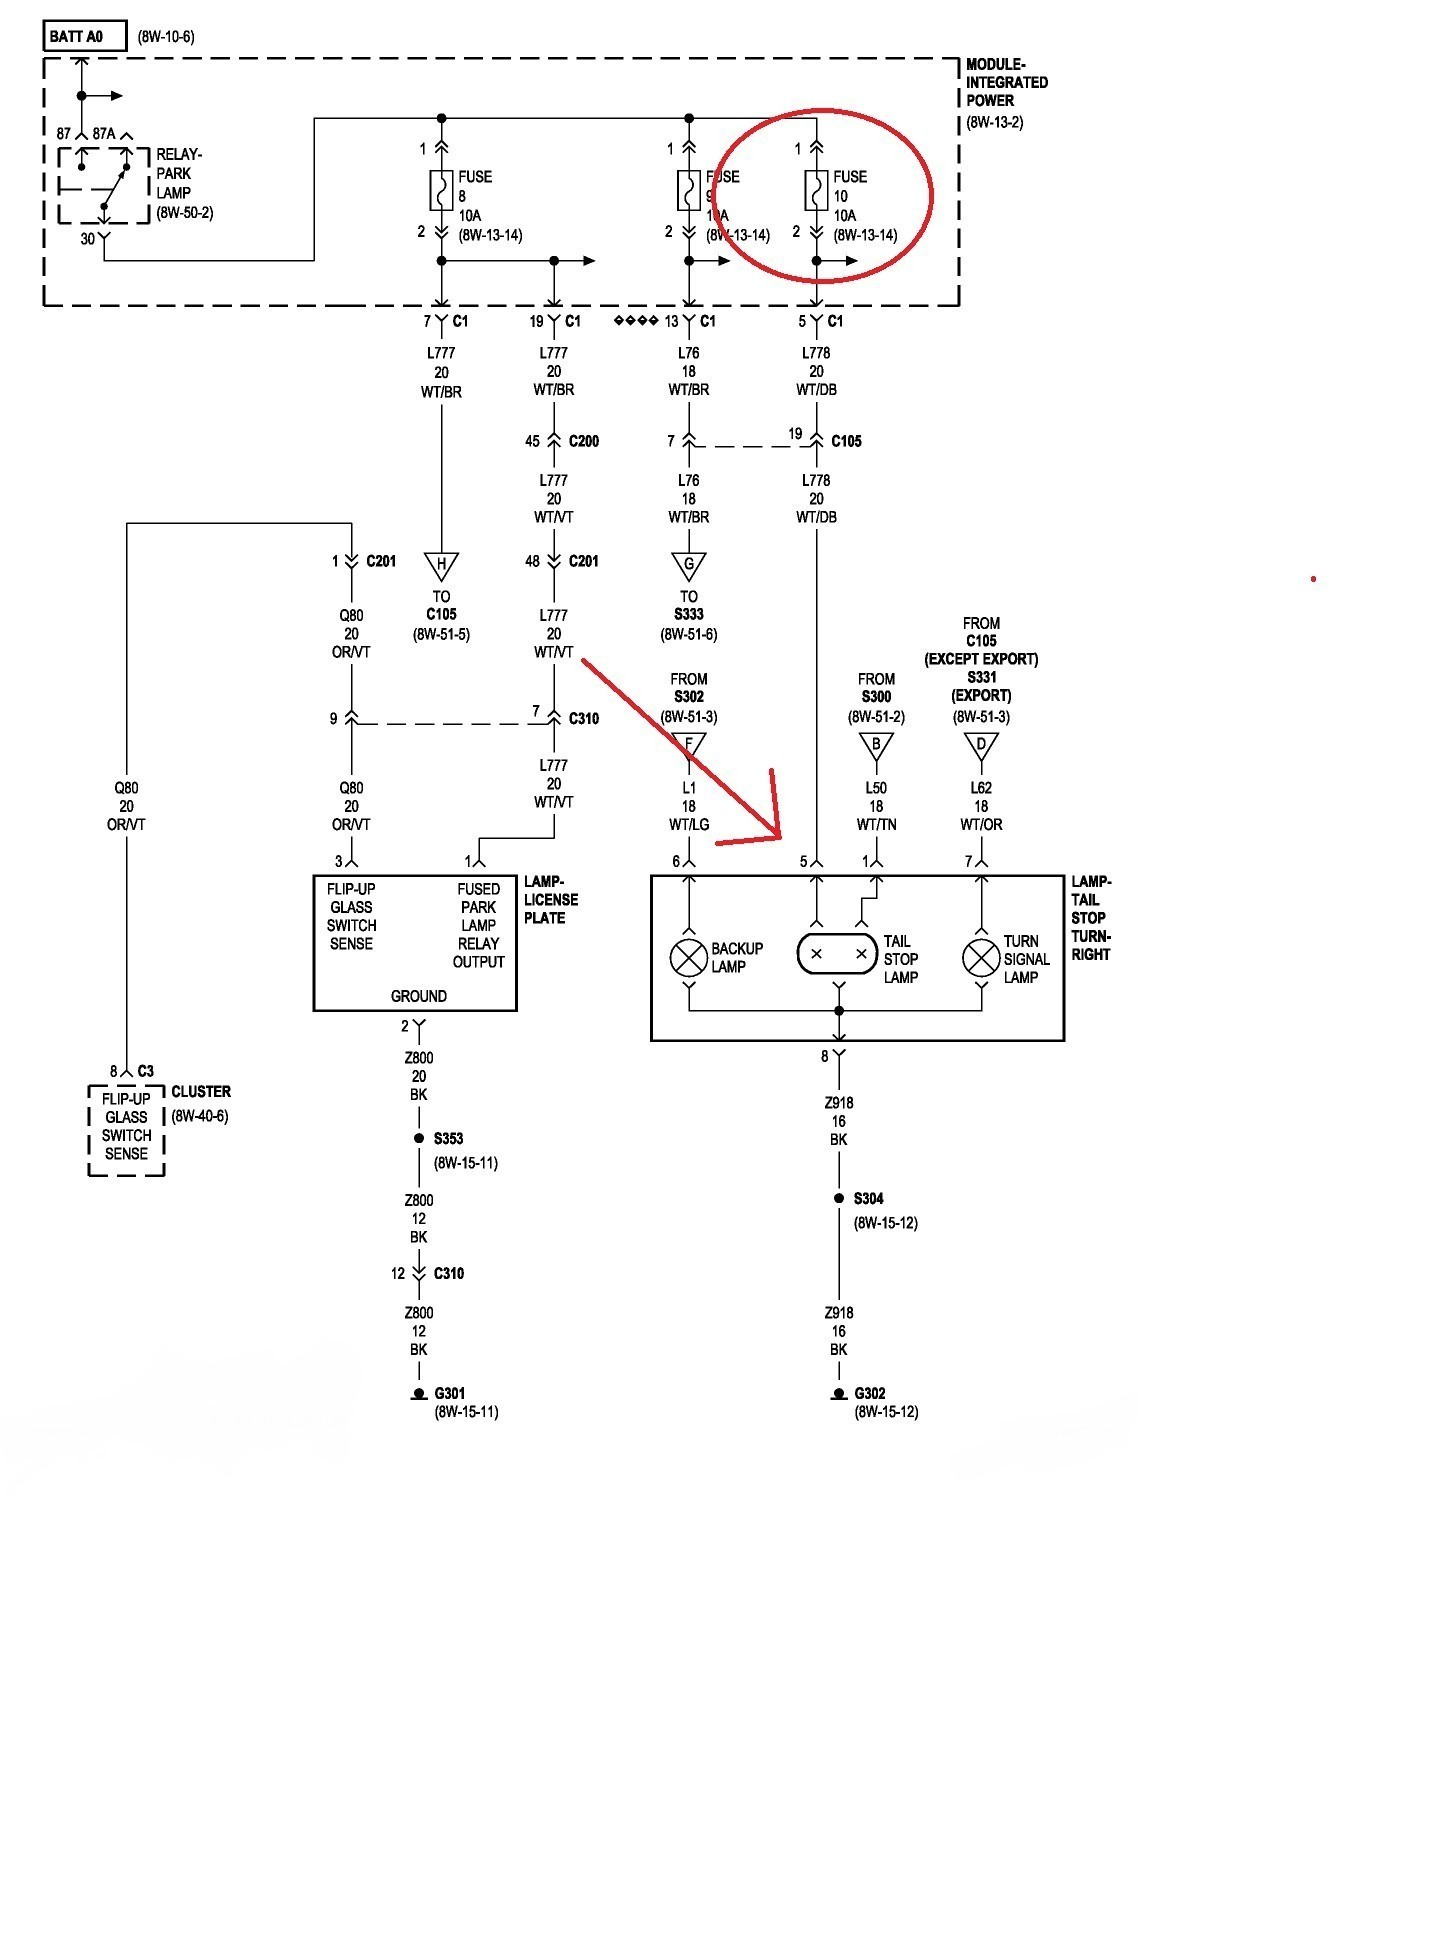 Jeep Tj Tail Light Wiring Diagram on mitsubishi outlander tail light wiring, dodge tail light wiring, lincoln town car tail light wiring, eagle talon tail light wiring, toyota tail light wiring, jeep cj7 tail light wiring,